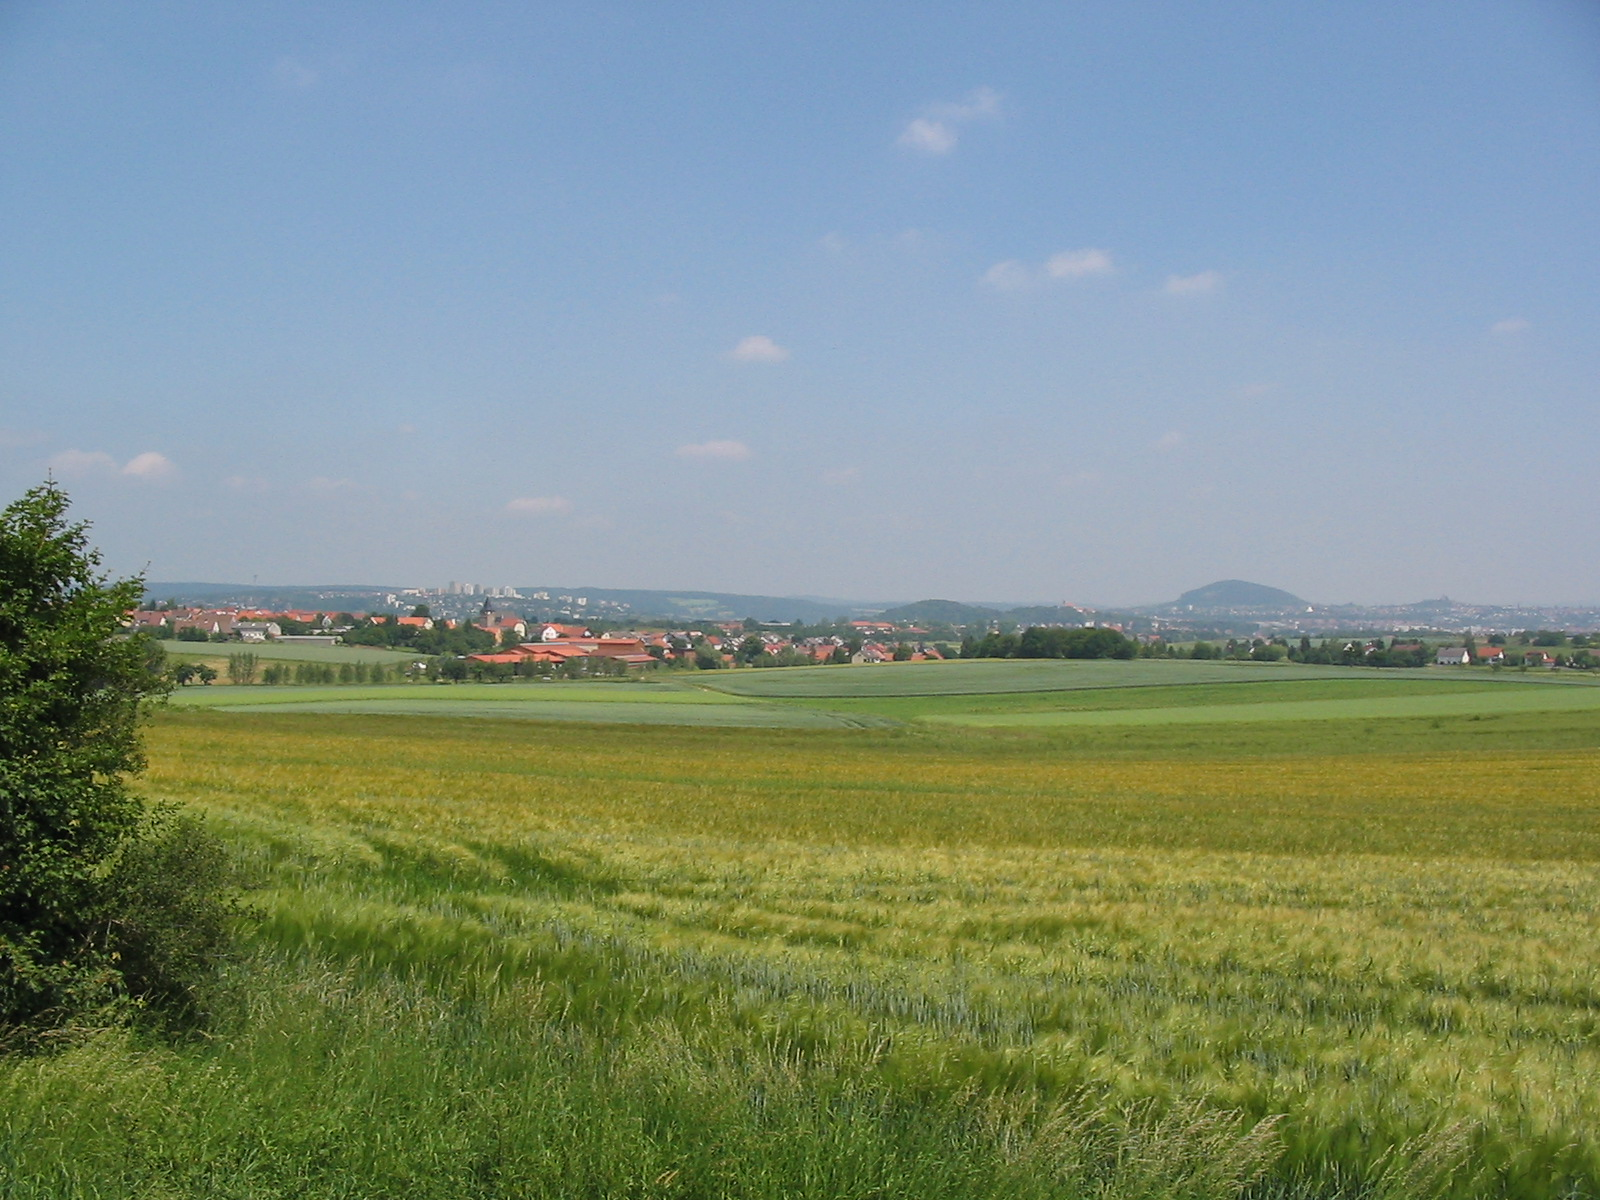 File:Fulda countryside.jpg